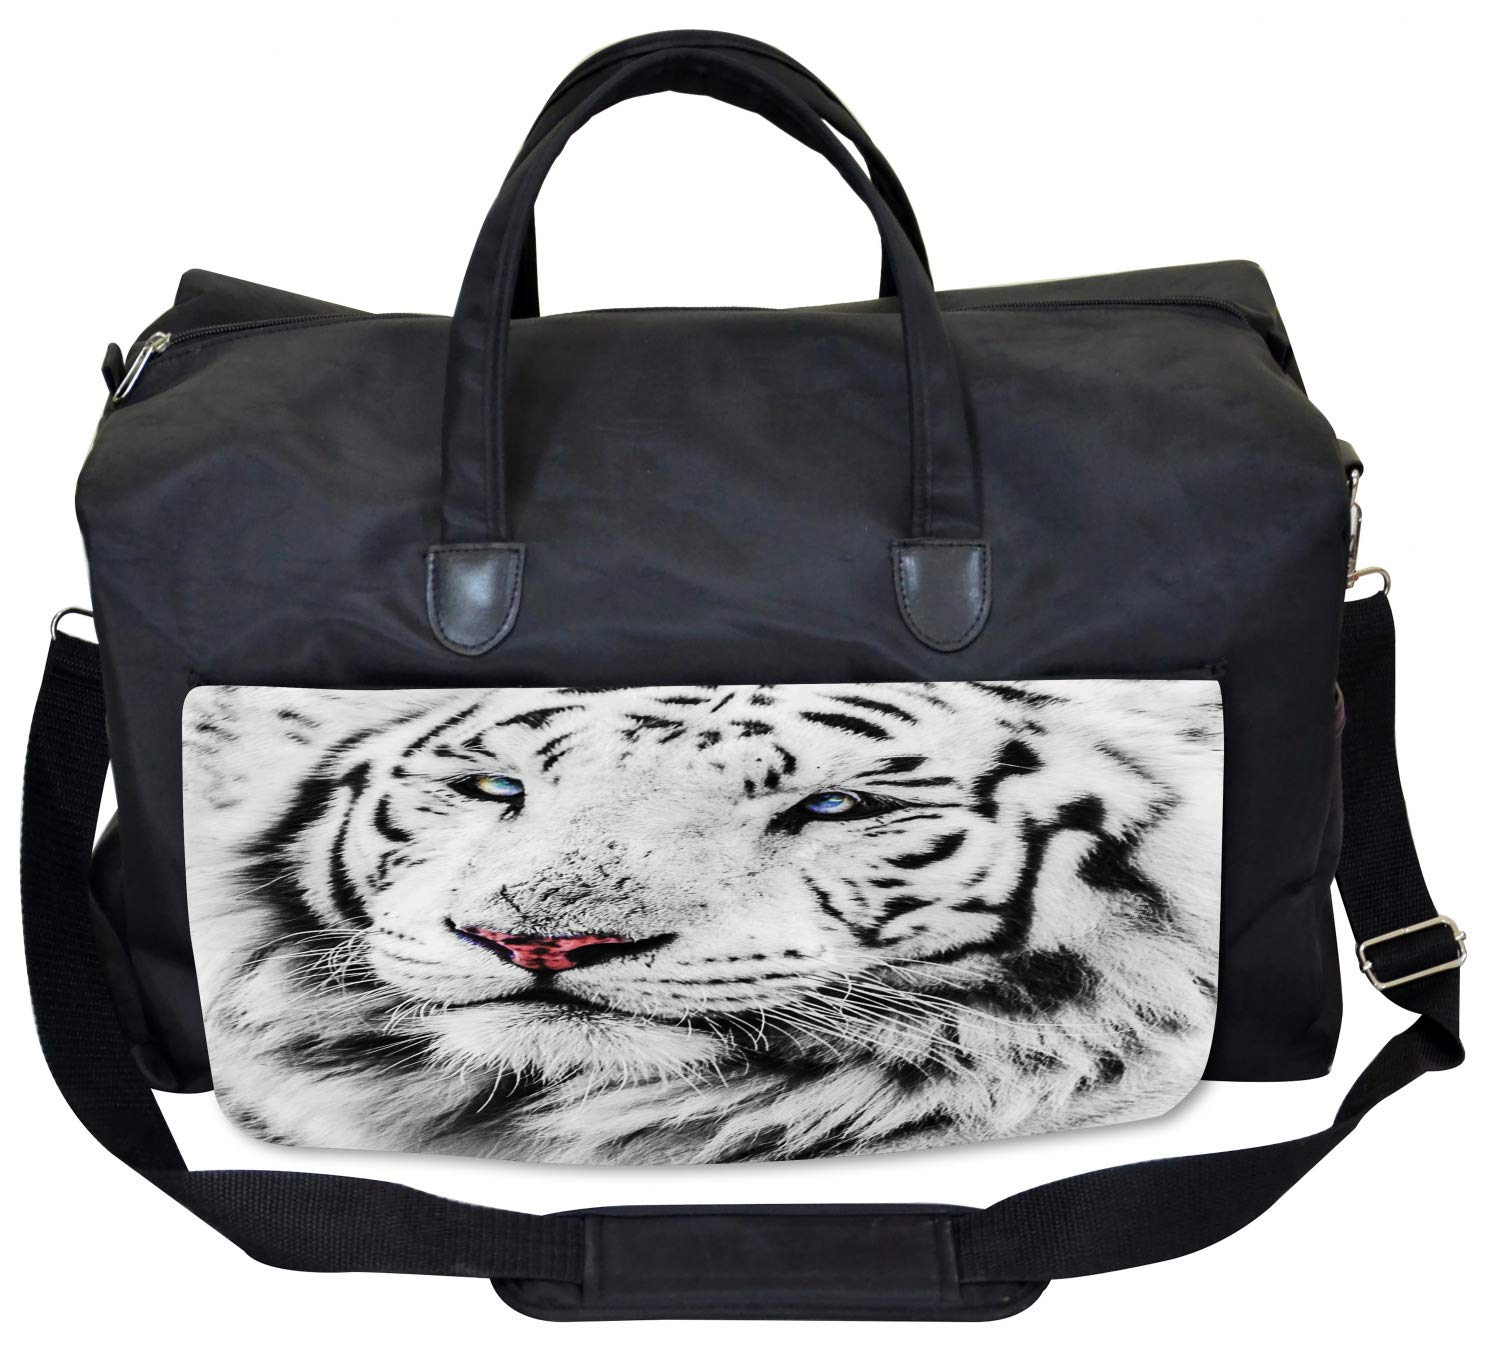 Black and White Tiger Gym Bag